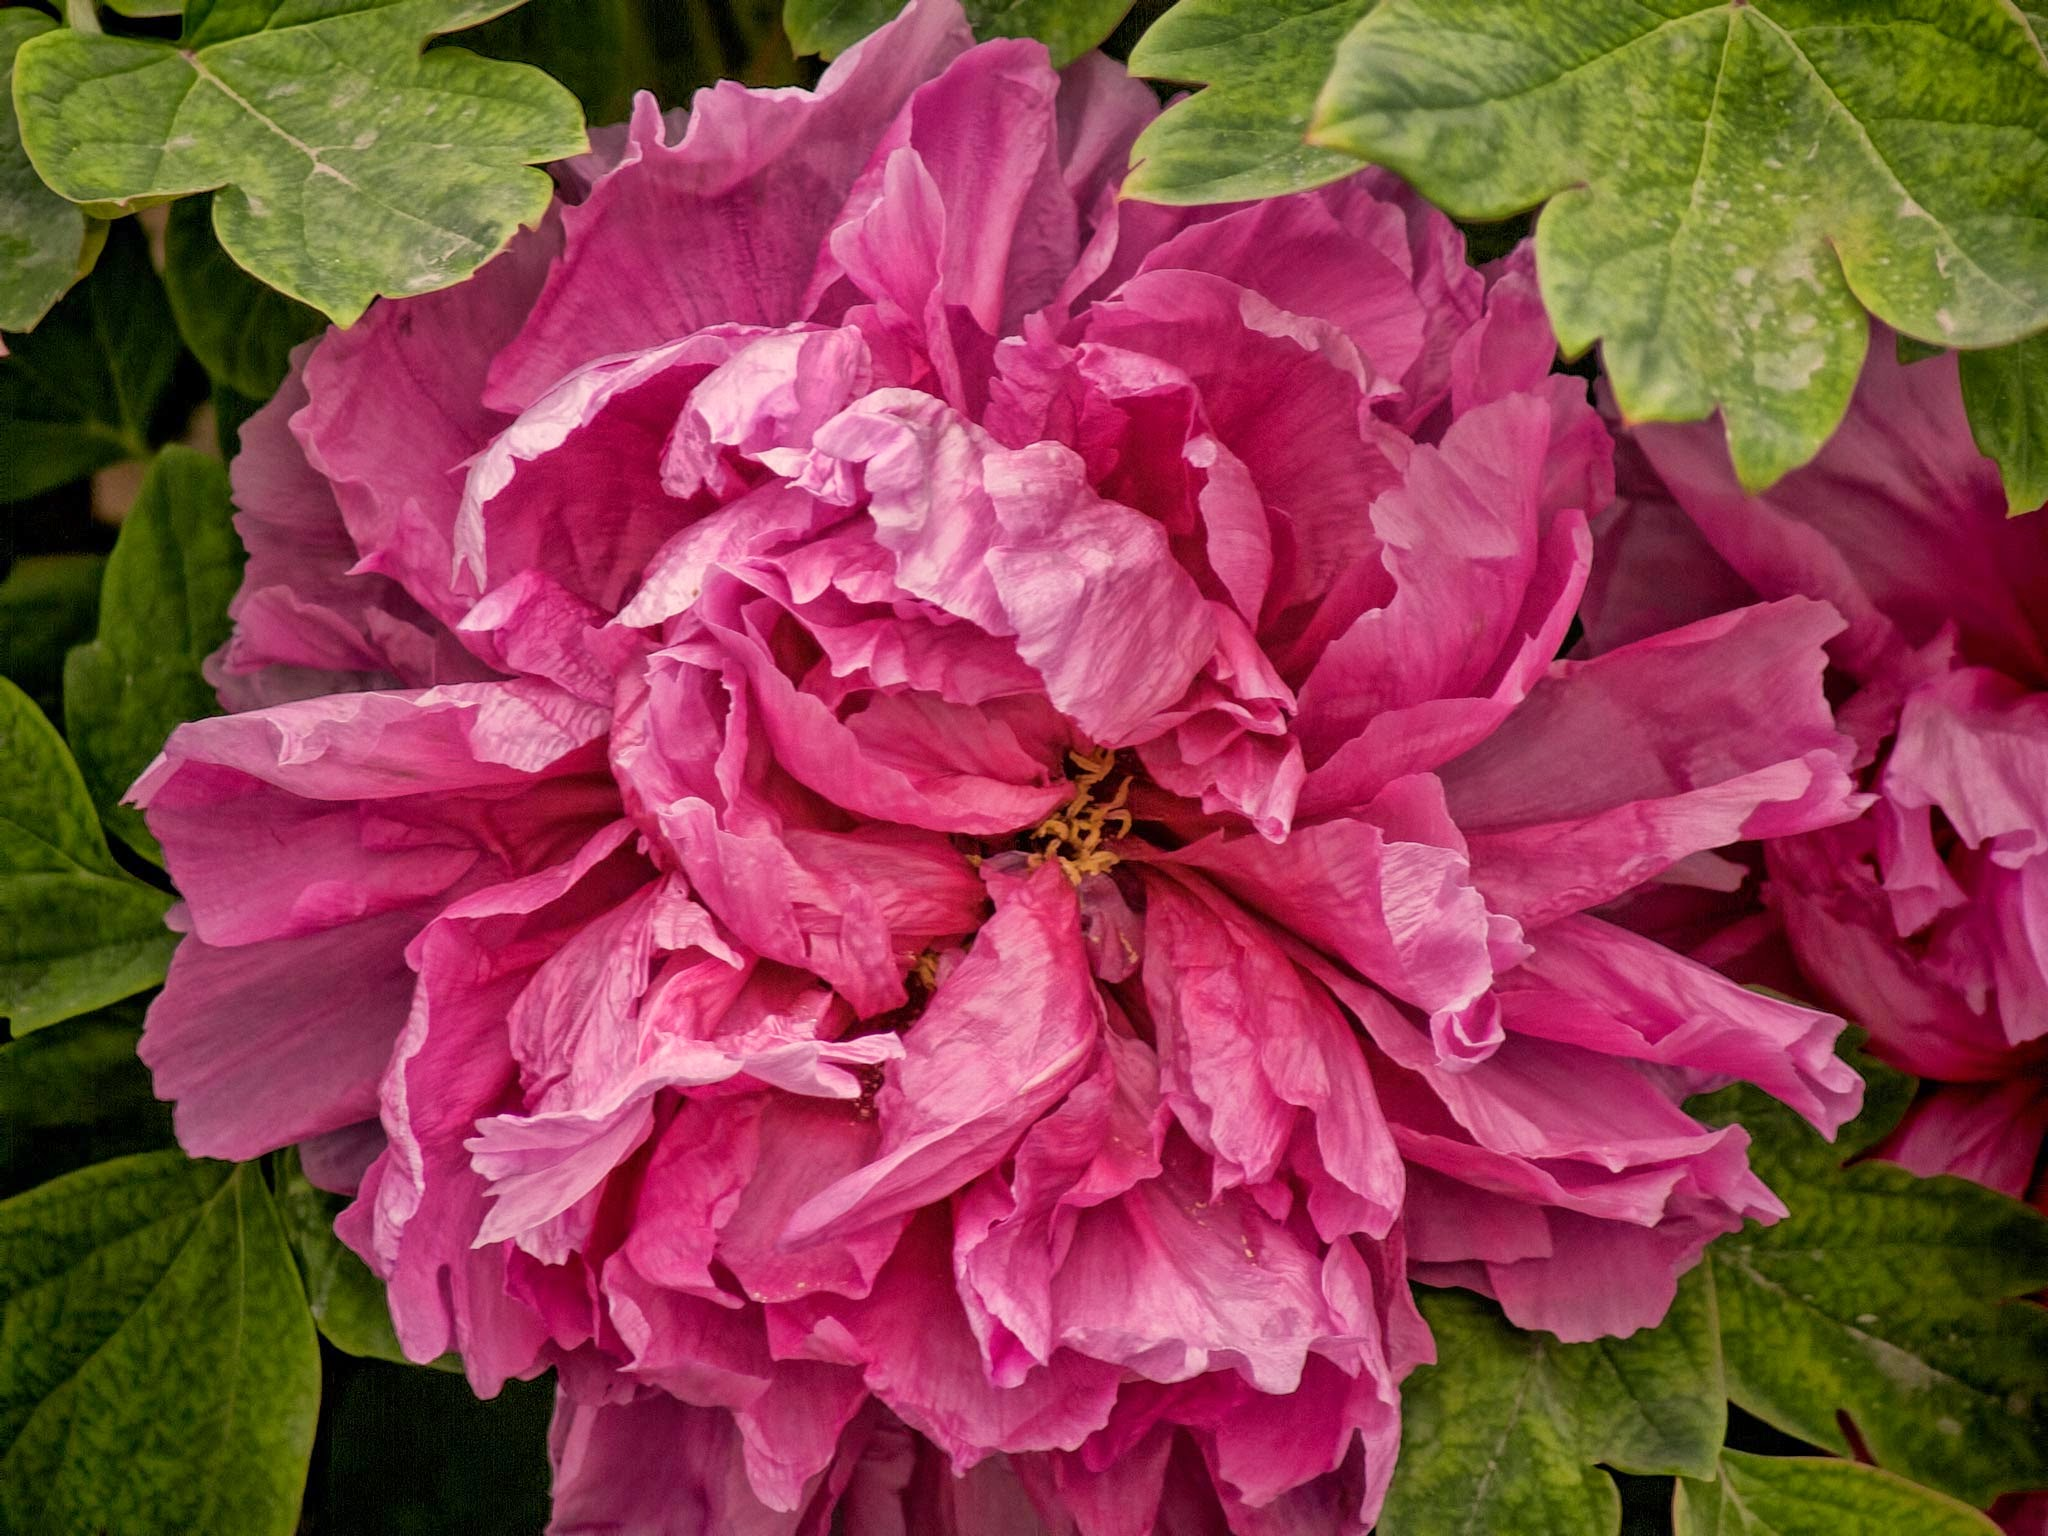 Photo: Peony The unofficial national flower of China.  Continuing my #China  catalogue diving. I don't think this photo has ever been posted anywhere, so I thought I'd give it a run through the processing wringer and see what came out. Used to achieve this result were #TopazDenoise3 , #TopazDetail5   and #TopazAdjust5 .  Peonies are grown in different ways from small shrubs to large tree-like plants. Blooms range from a couple of inches in diameter to six or eight inches, depending on how they are cultivated. This was probably in the four or five inch range.  The gardens surrounding the Giant Goose Pagoda in #Xian , China would be a peony lover's delight. They seemed to be everywhere, and April is apparently a great month to catch peonies in bloom.  #GiantGoosePagoda   #Peony